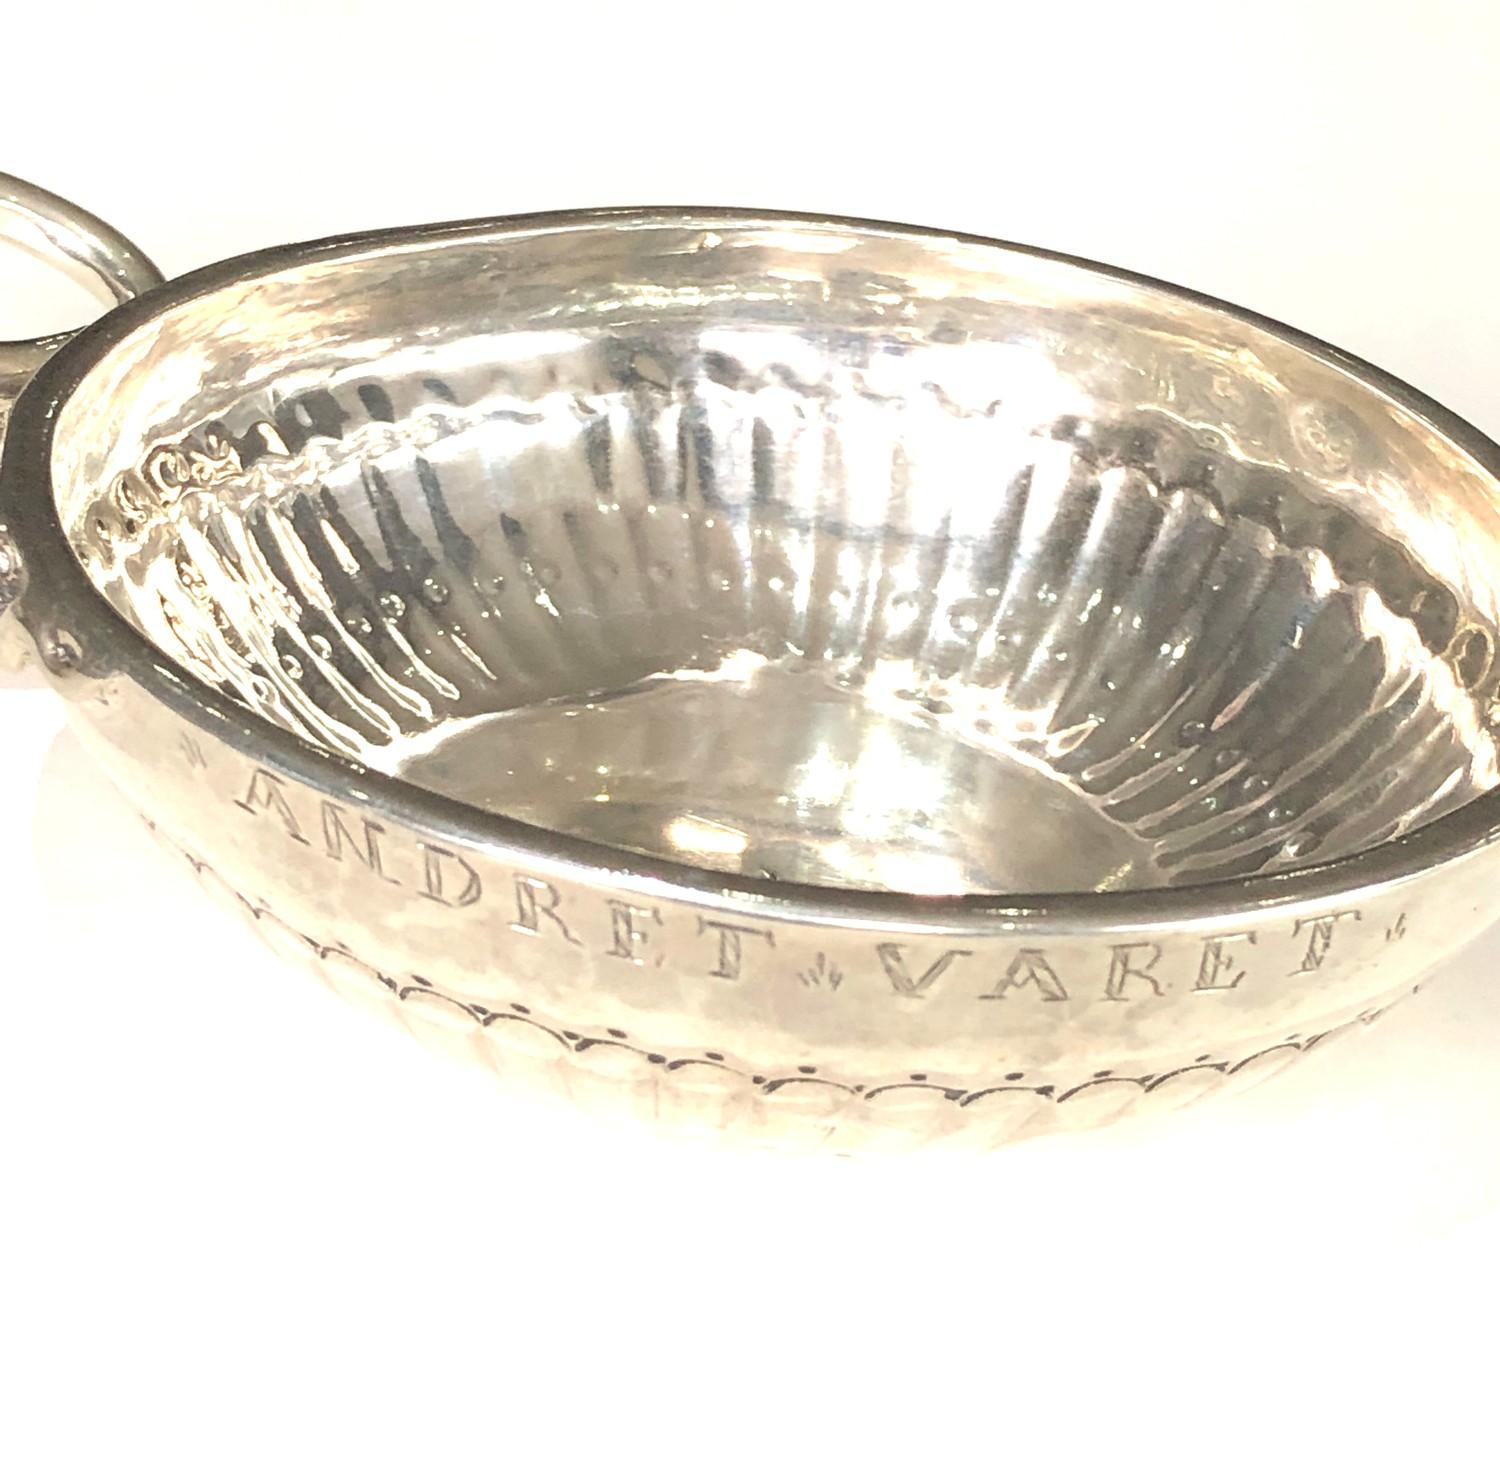 Fine 18th century French silver wine taster measures approx 12cm by bowl 9.5cm dia full hallmarks to - Image 7 of 7